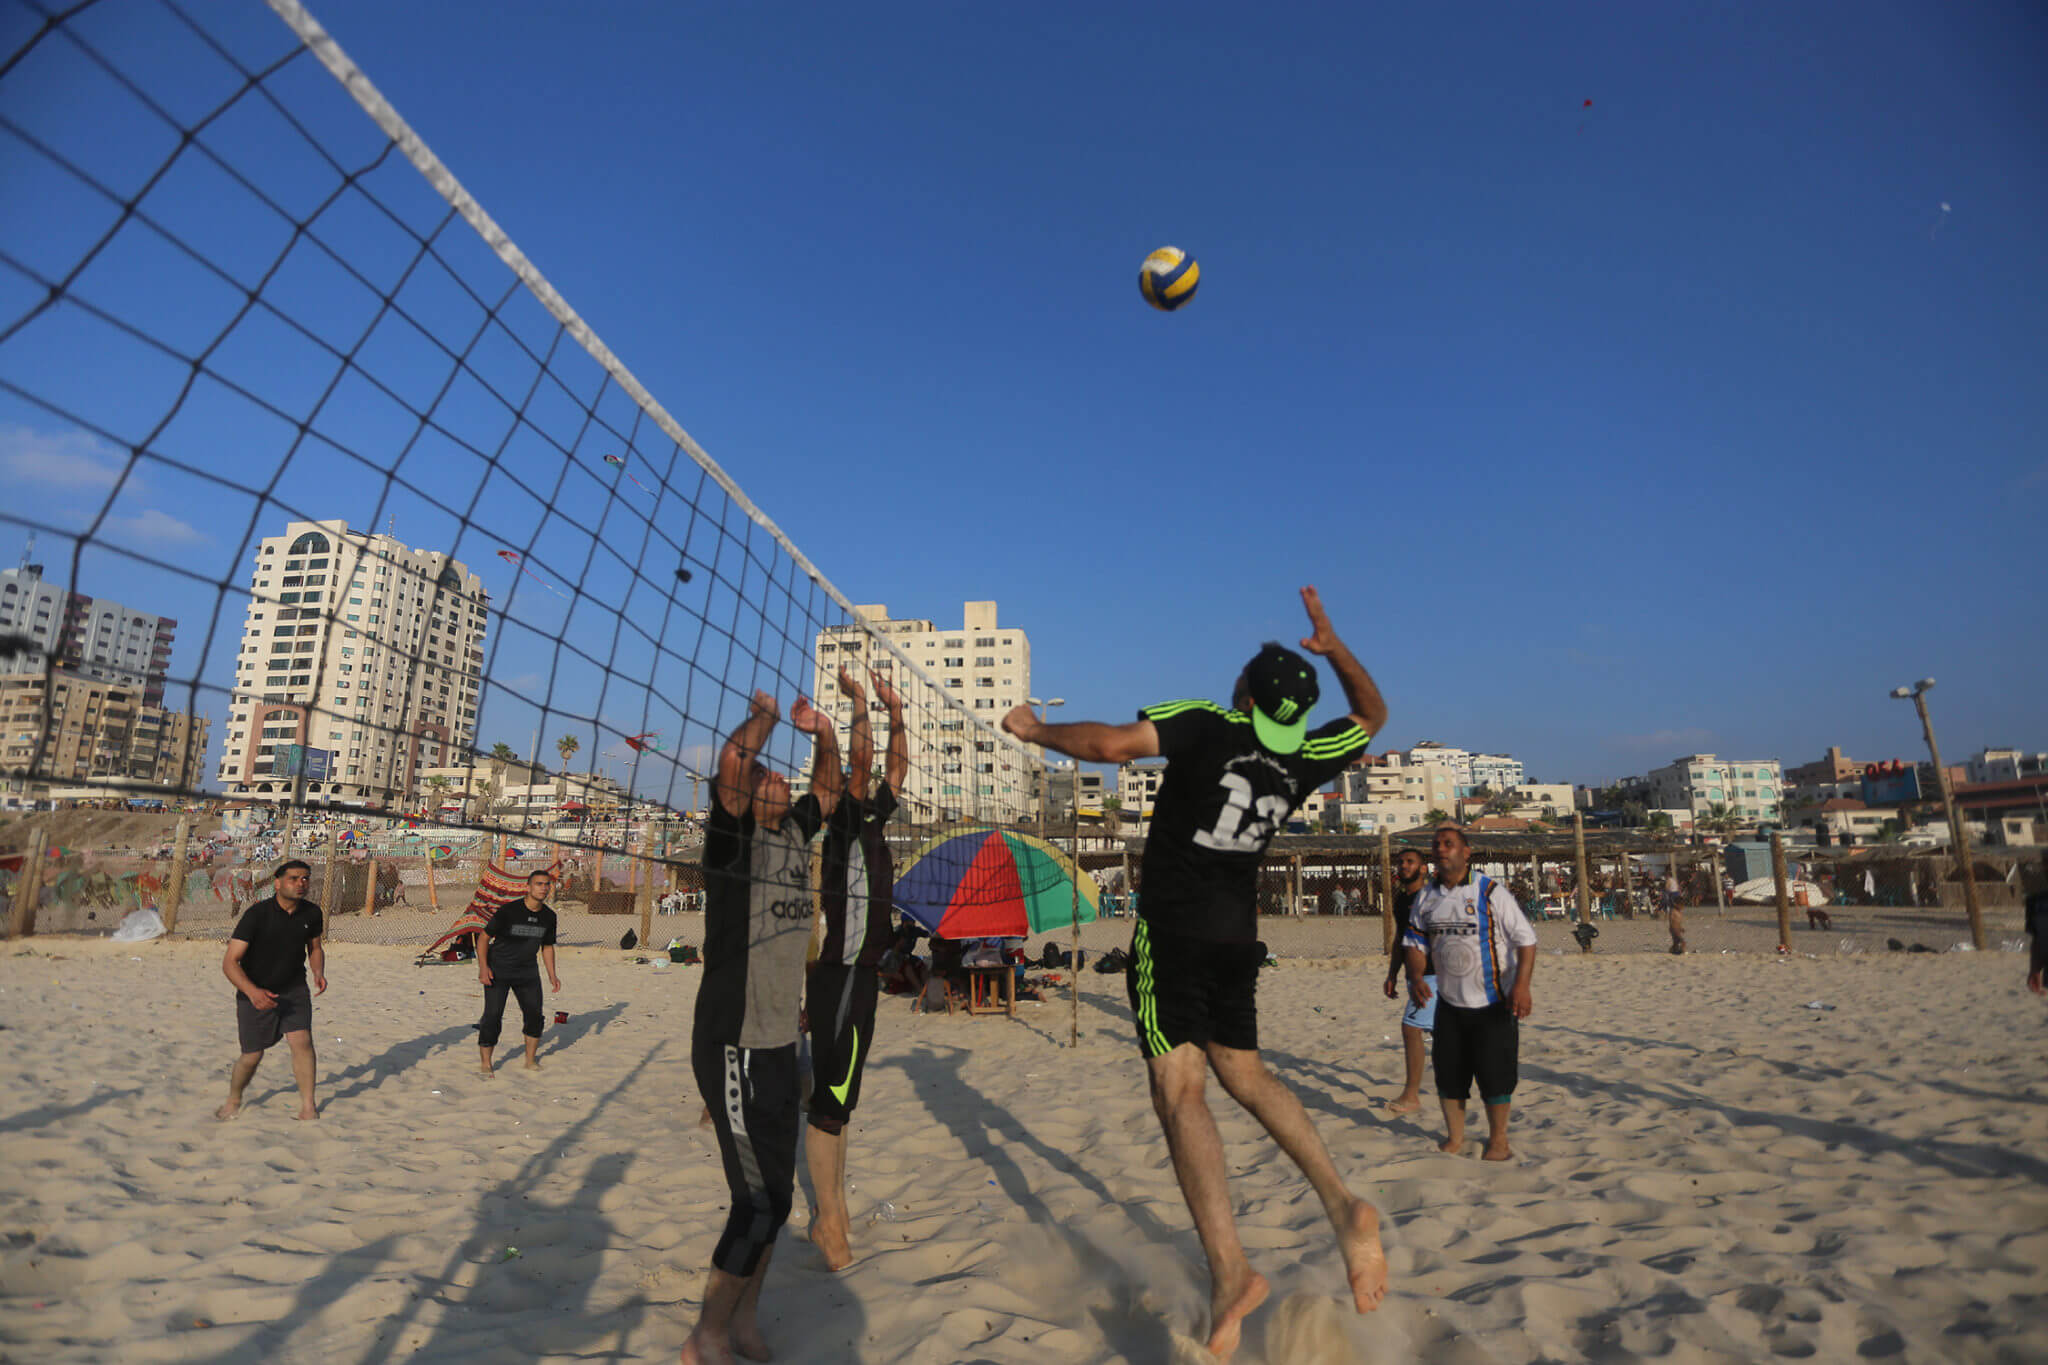 Volleyball players on the Gaza beach